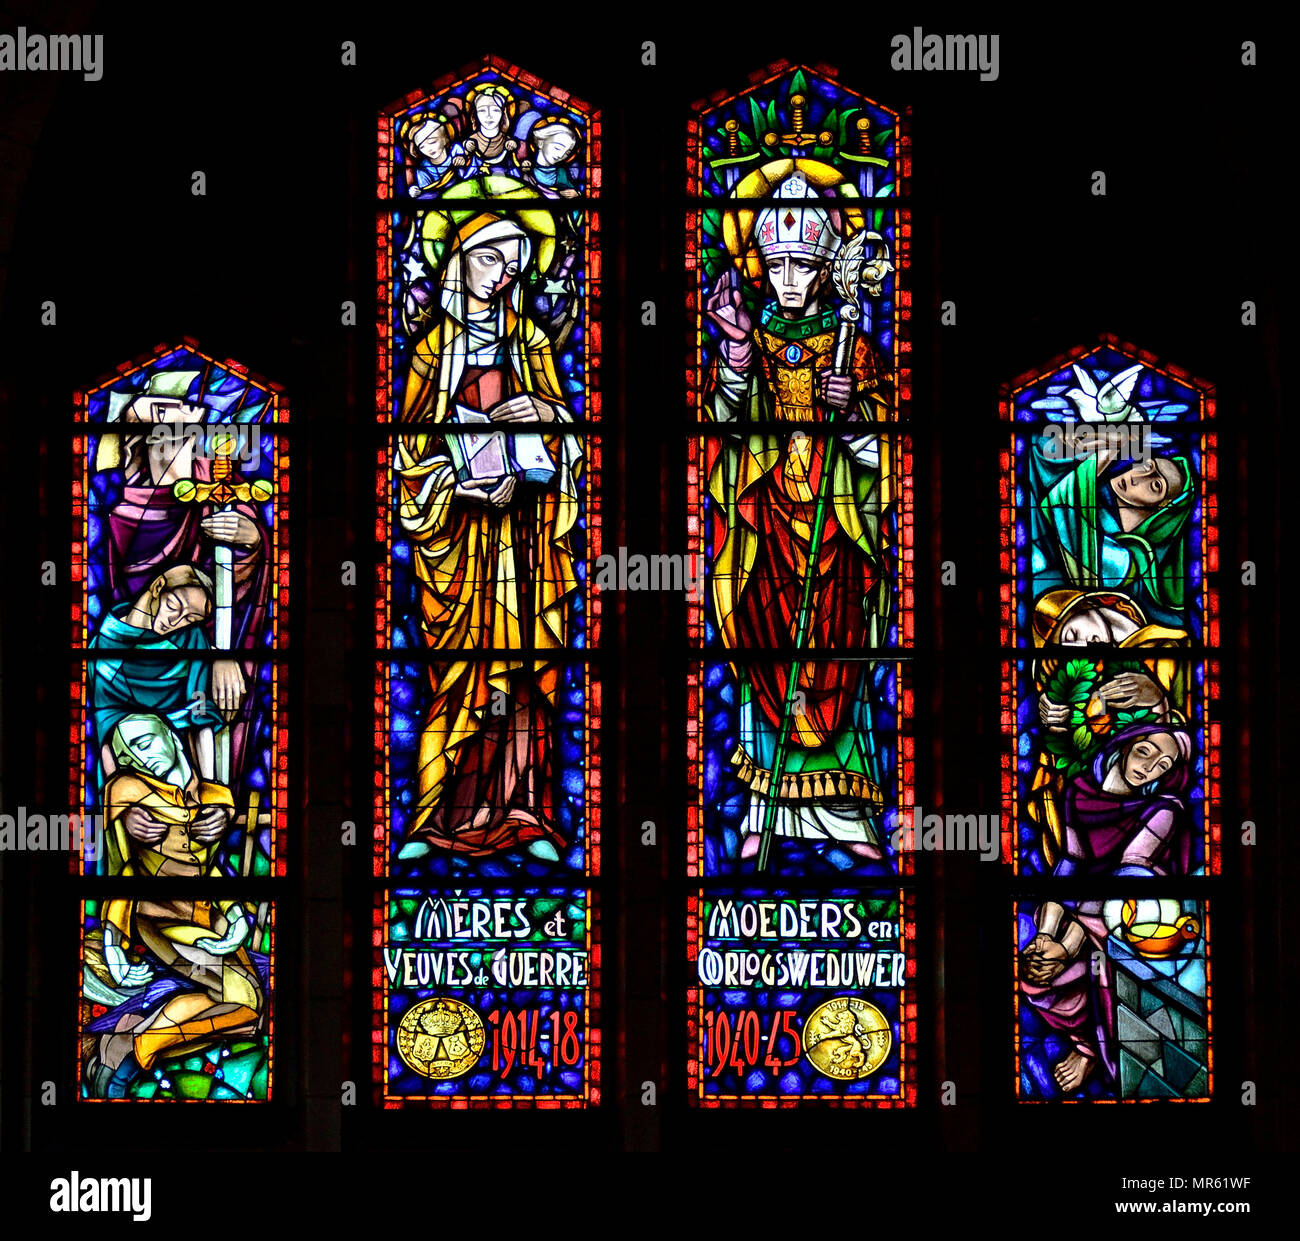 Stained glass window dedicated to bereaved Mothers and Widows of the two World Wars. National Basilica of the Sacred Heart / Basilique Nationale Koeke - Stock Image